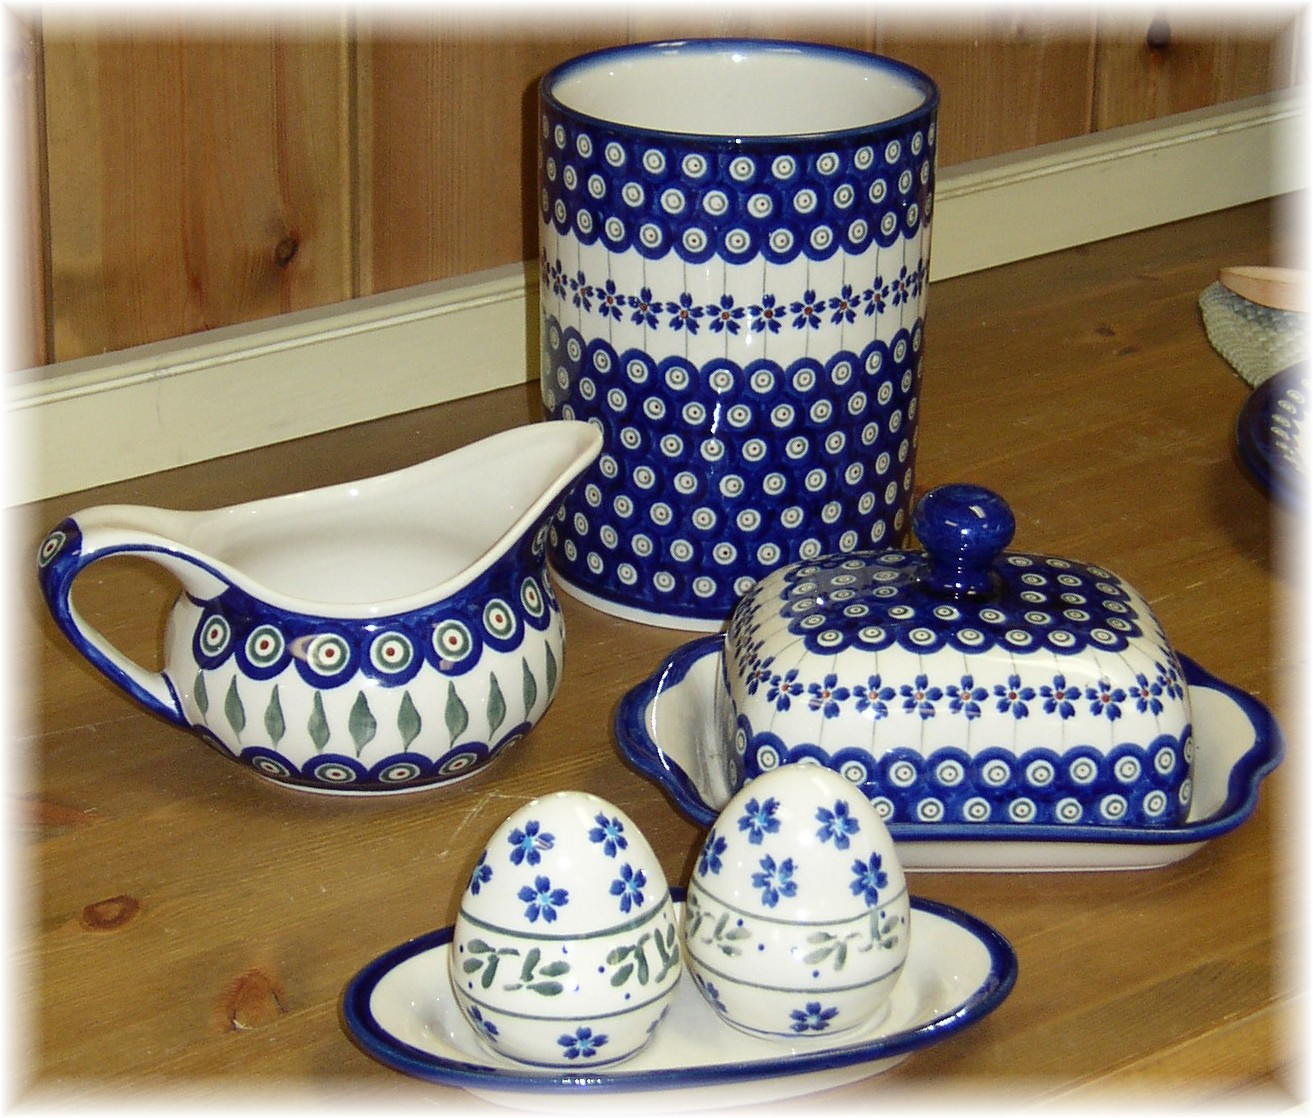 Polish Pottery straight from Old Poland